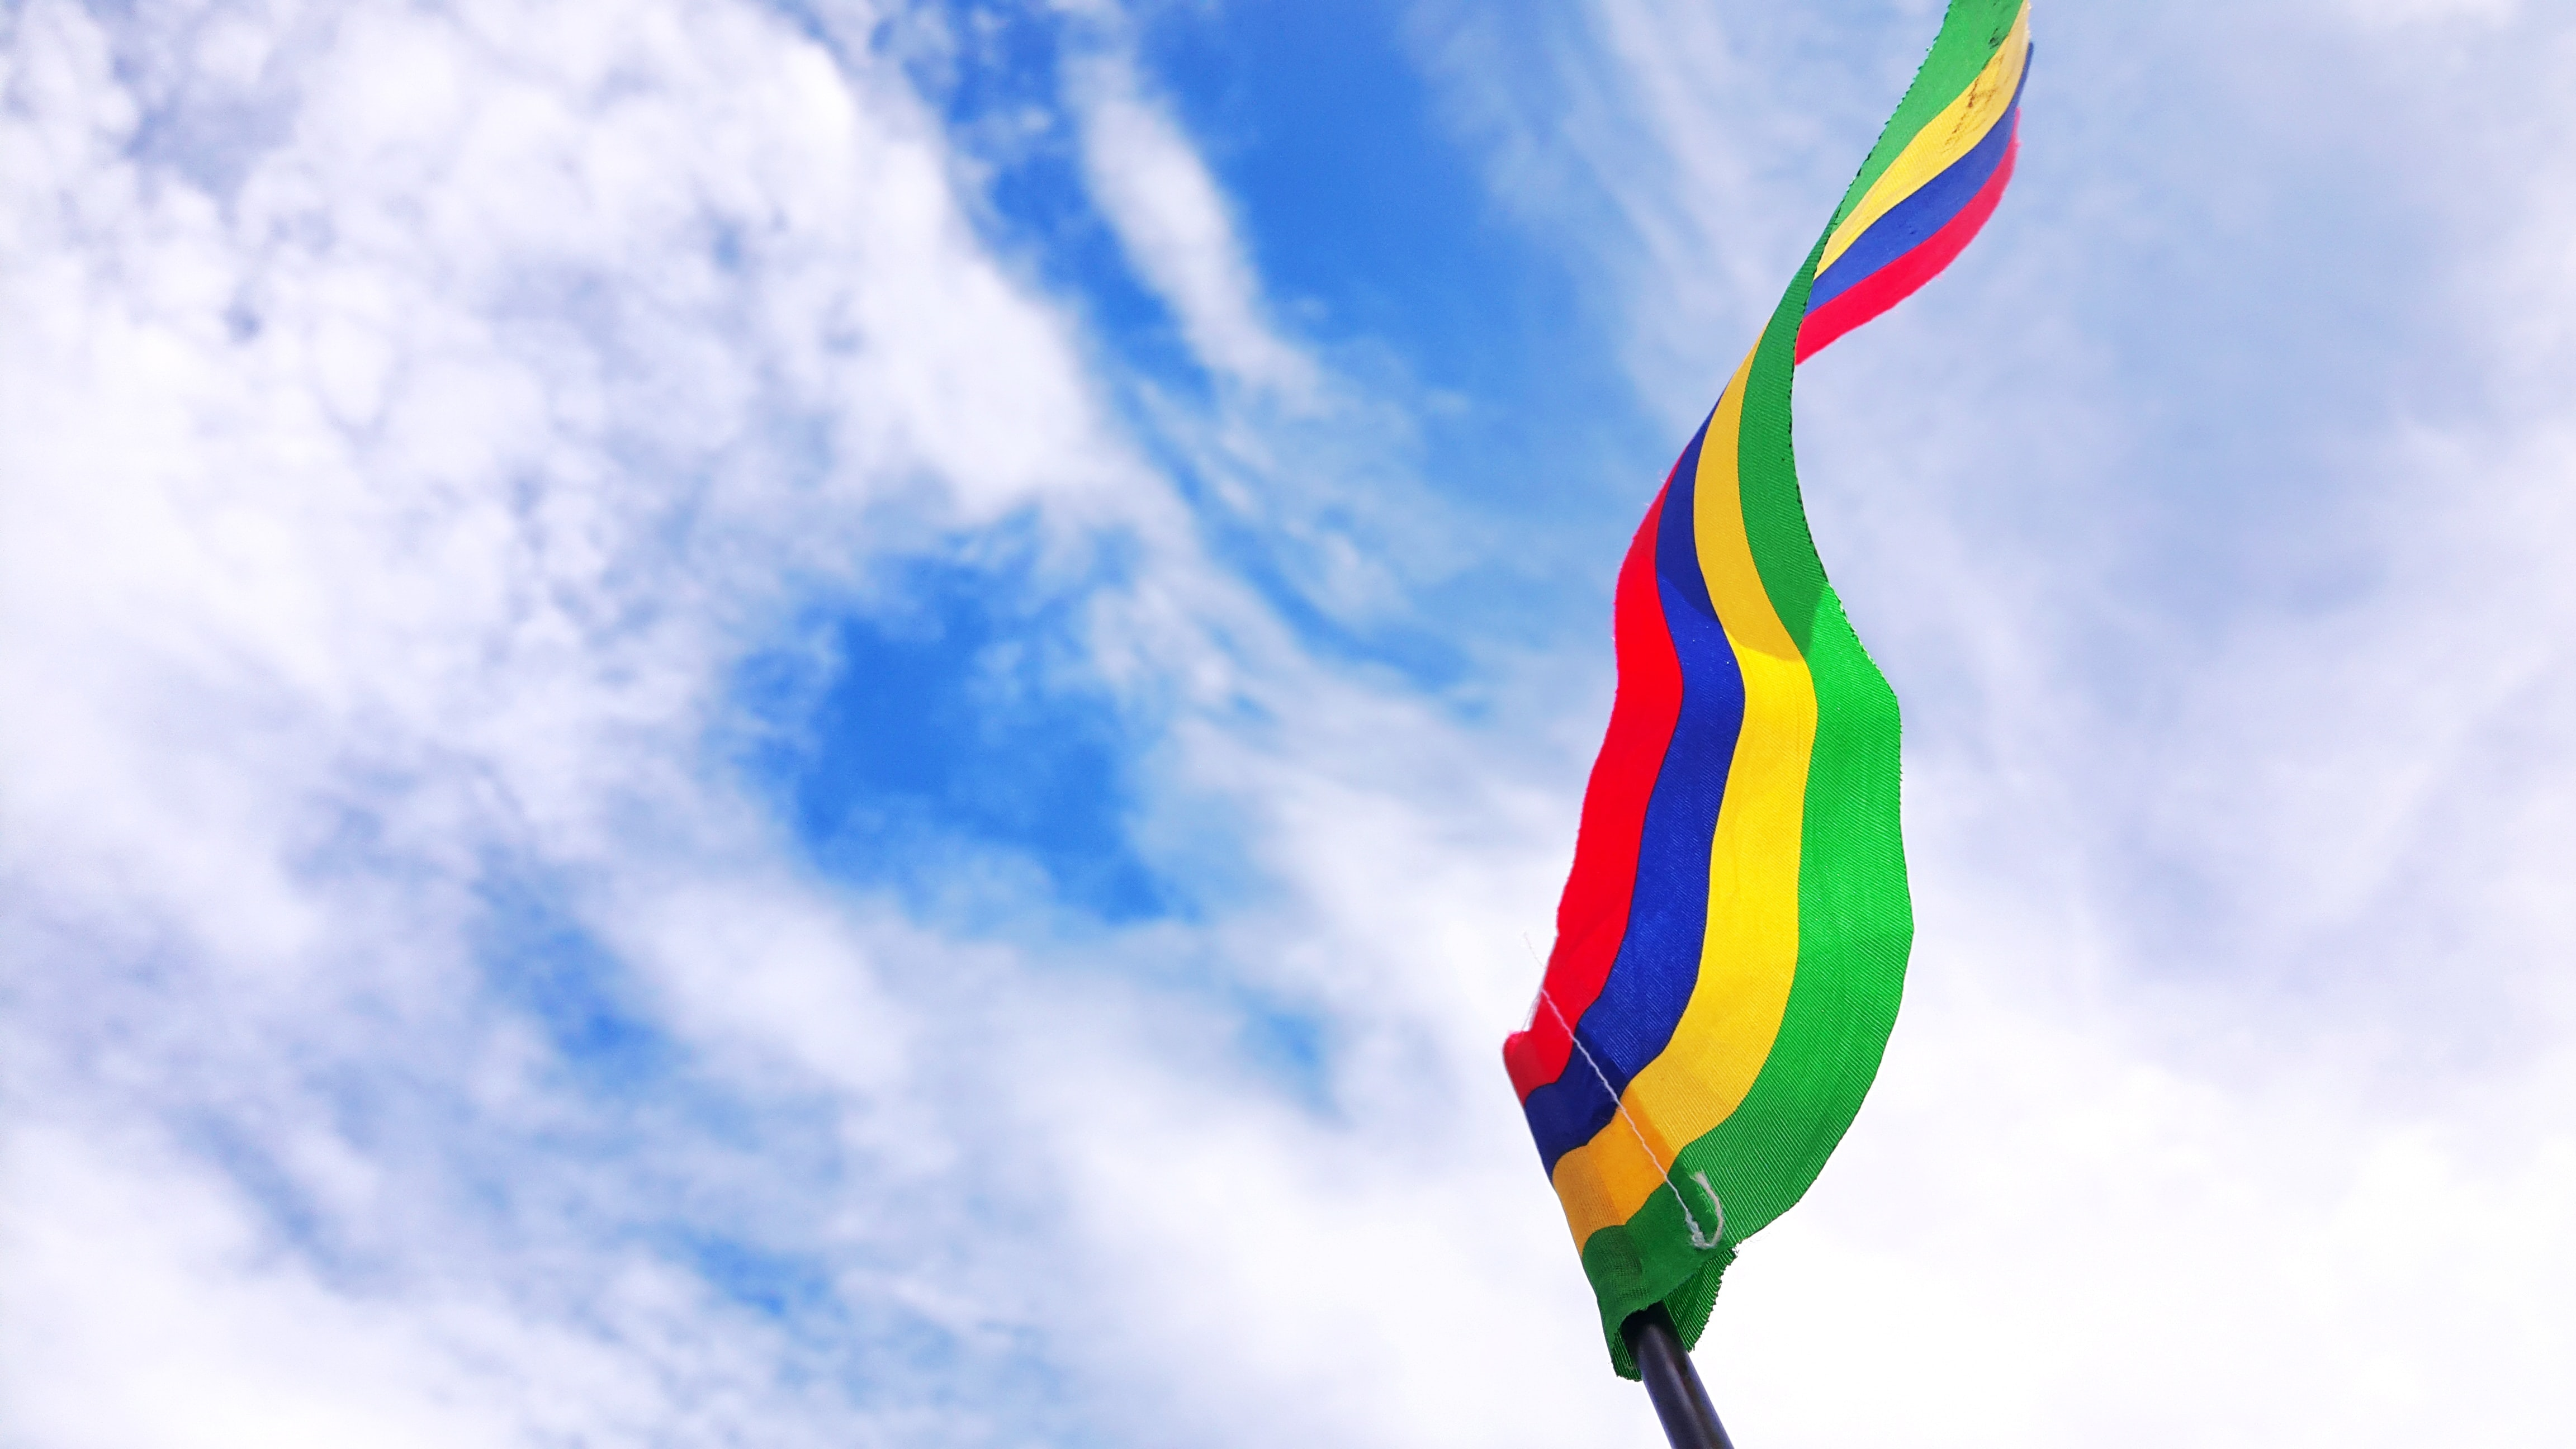 red, blue, yellow, and green striped flag under blue sky